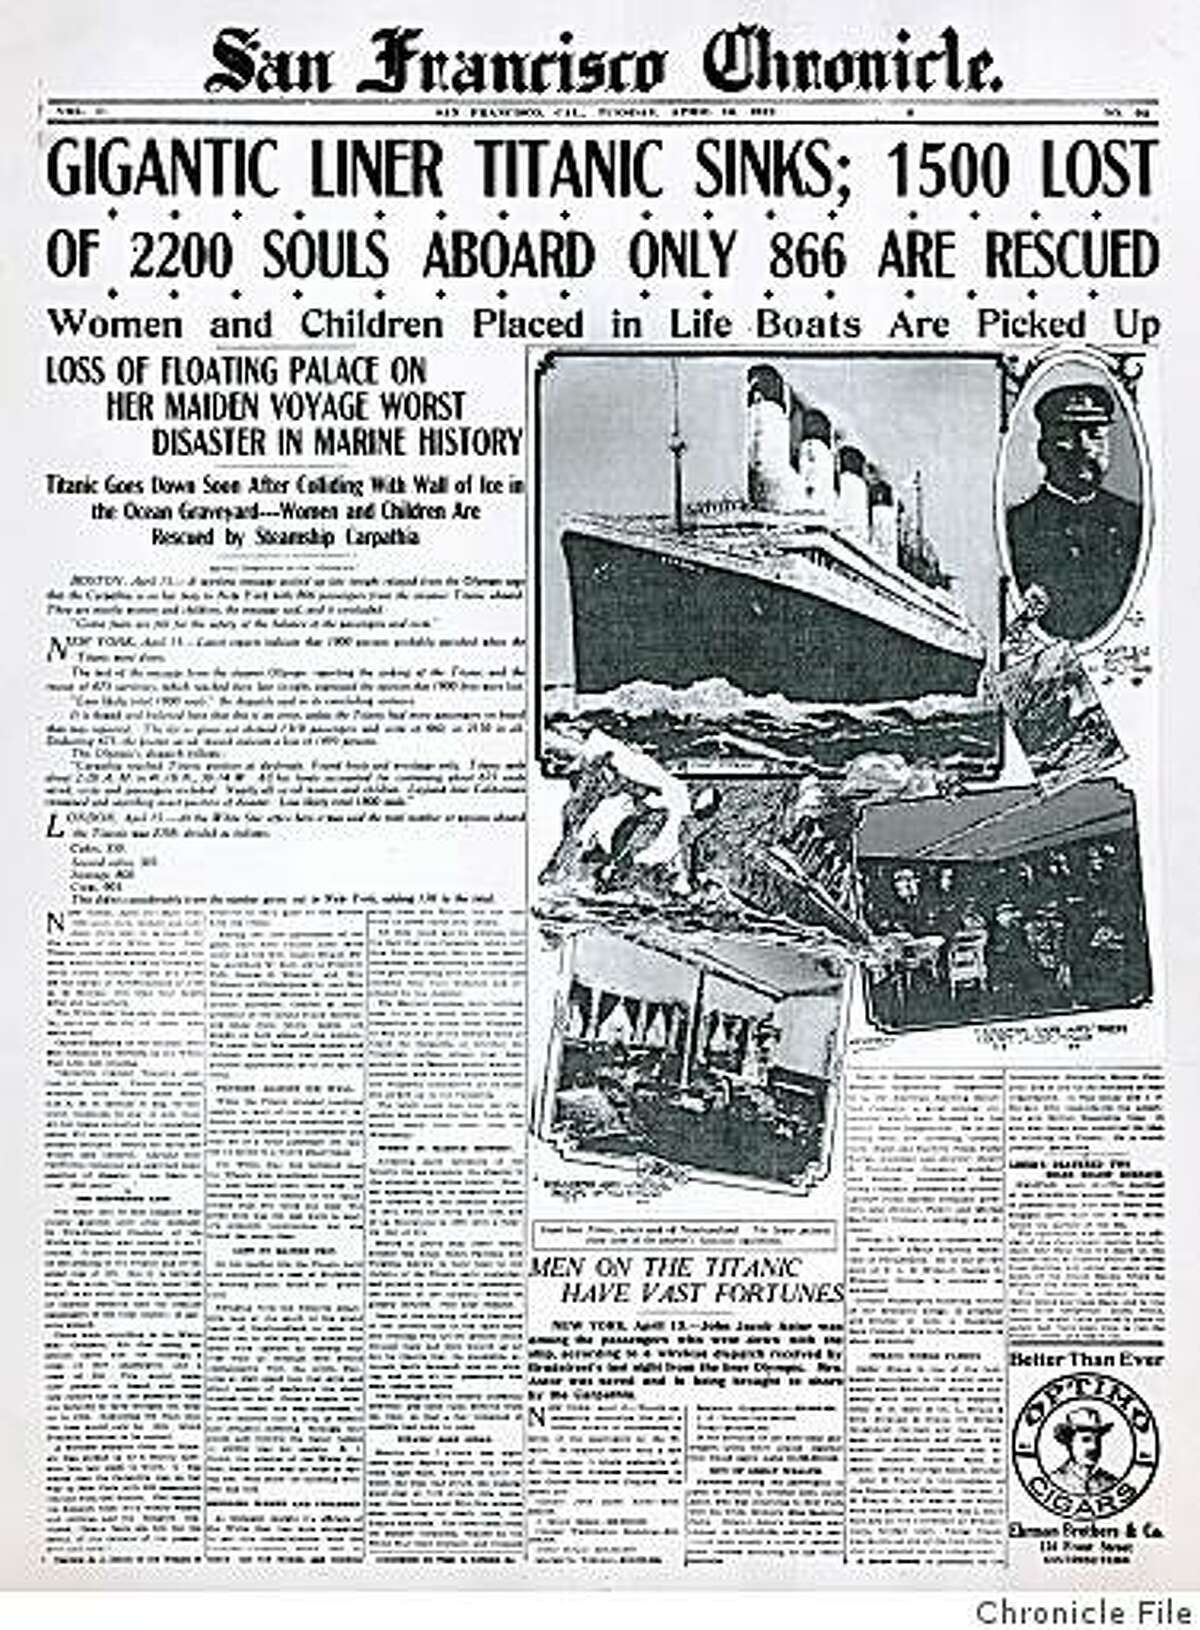 Dailyblast0416.jpg SF Chronicle cover from April 16, 1912. Chronicle File